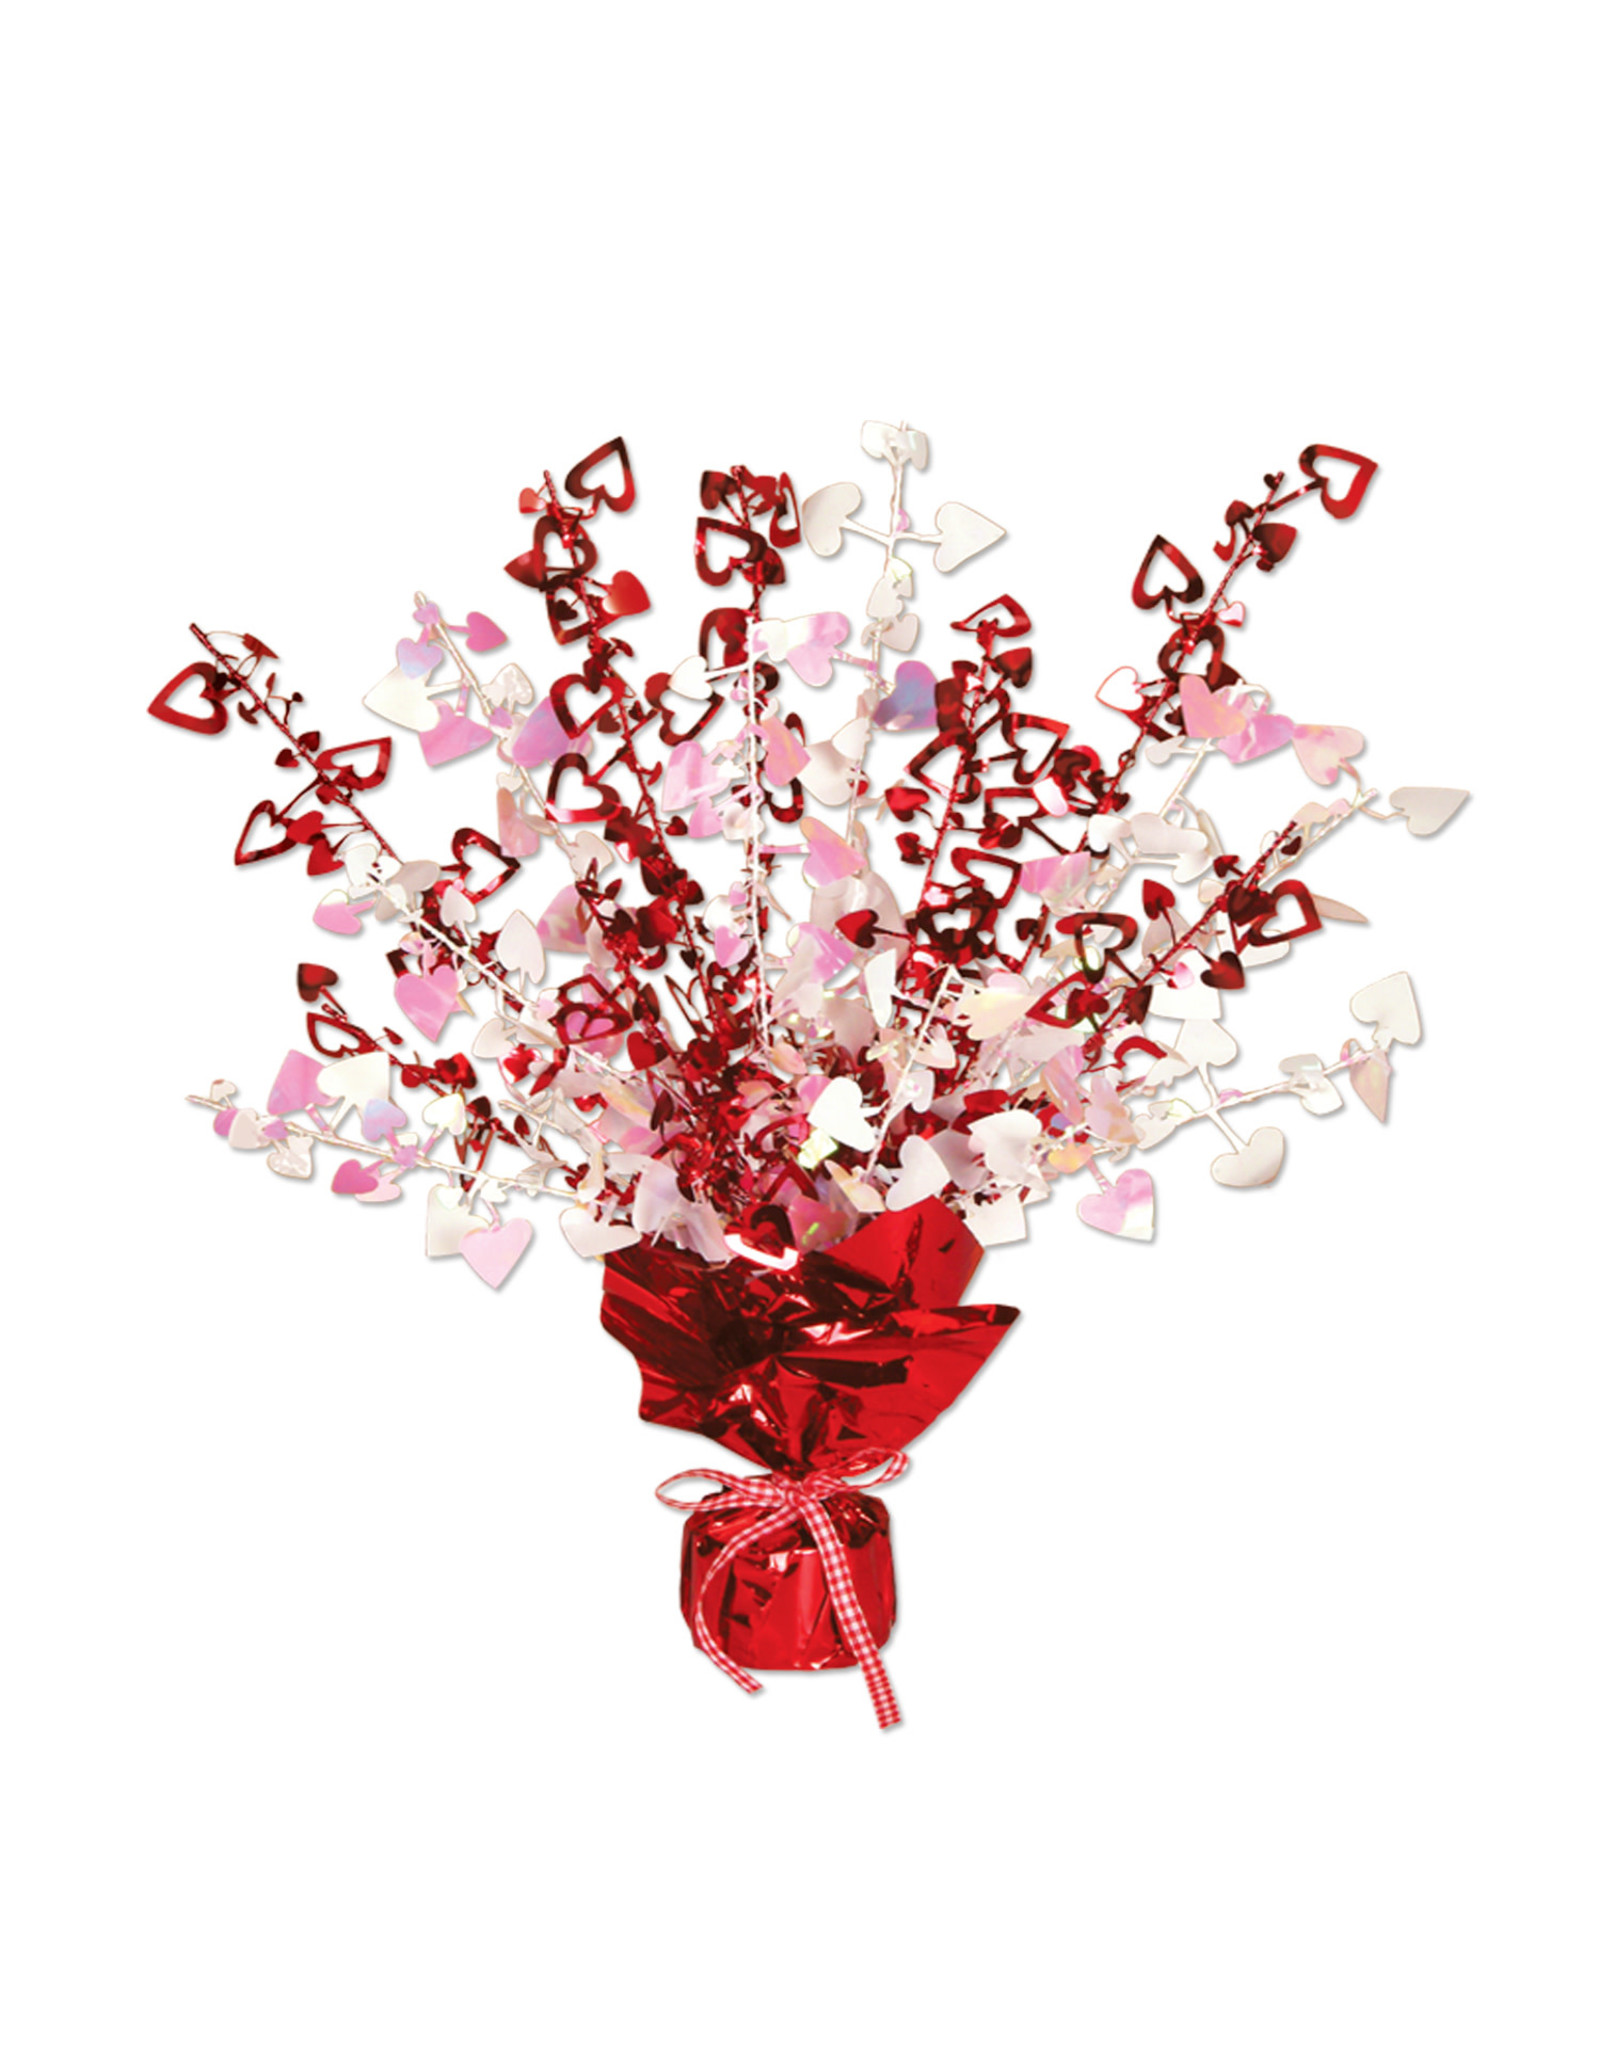 Beistle Heart Gleam 'N Burst Centerpiece